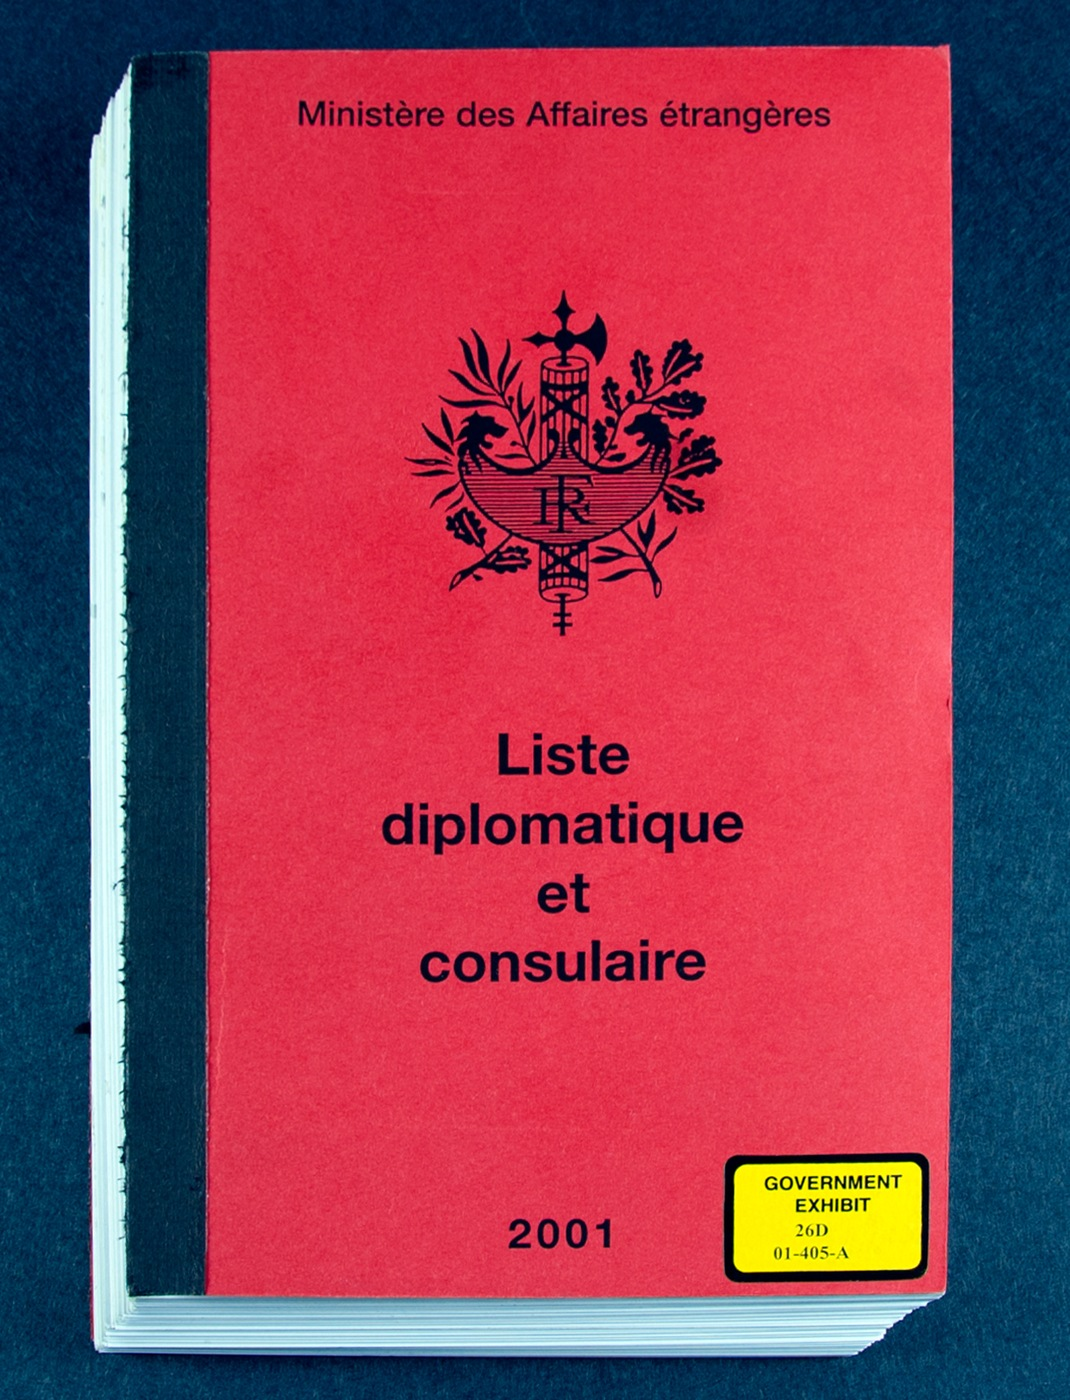 Photo of a copy of a booklet that lists contact information for foreign consulates that Brian P. Regan used to make selections of where to try and sell the classified information he had stolen. The booklet shown was used as an exhibit in Regan's trial.